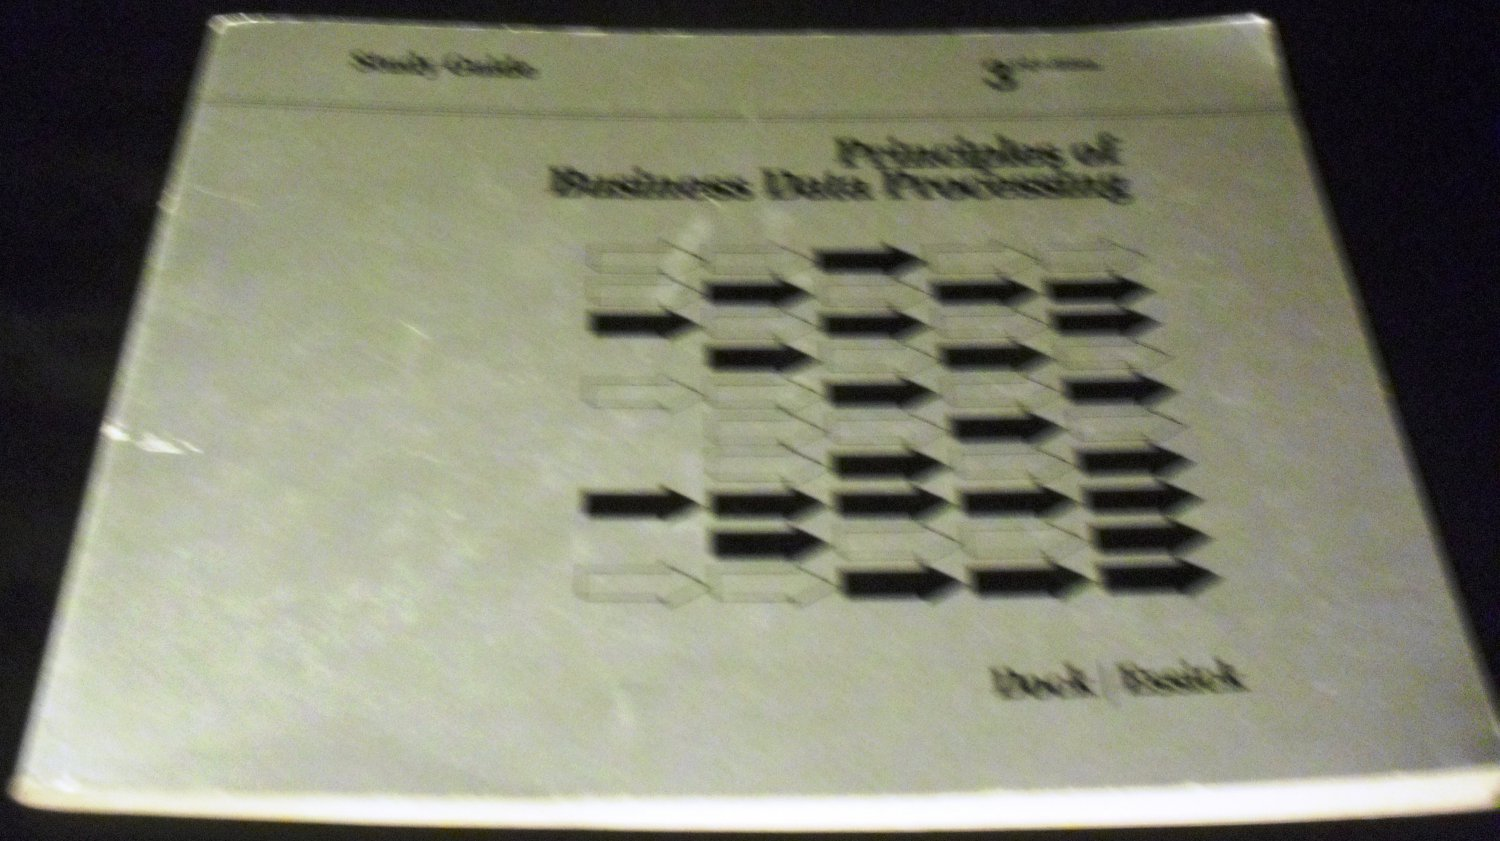 Principles of Business Data Processing: Study Guide (1978) by Dock and Essick